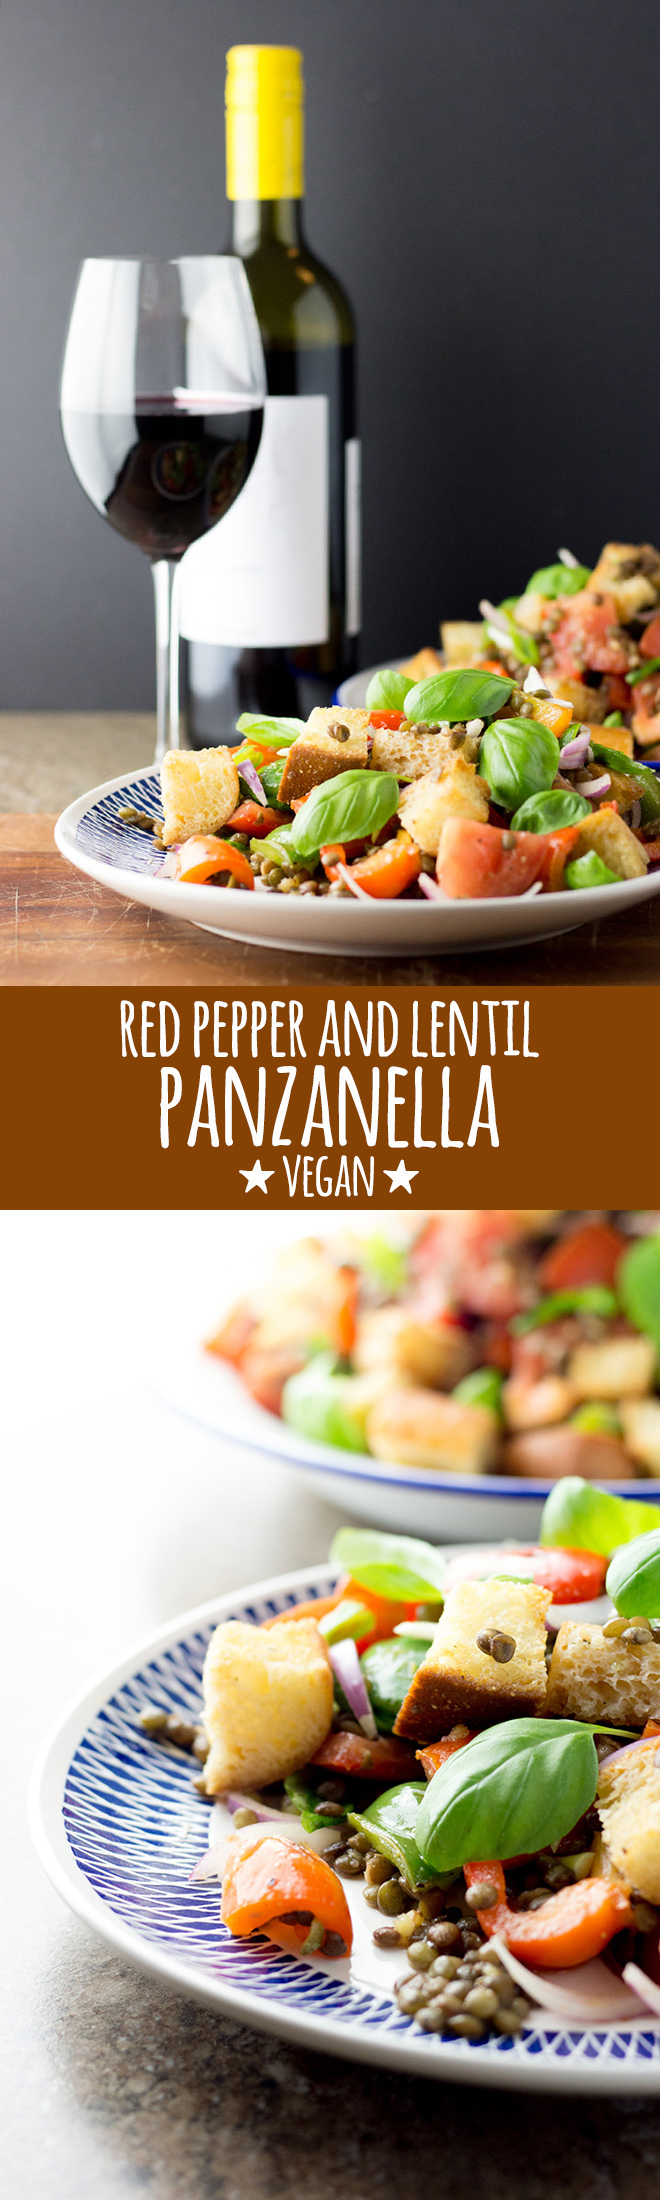 A simple and delicious panzanella salad with green lentils, mixed peppers and tomatoes dressed with a light and bright red wine vinaigrette.